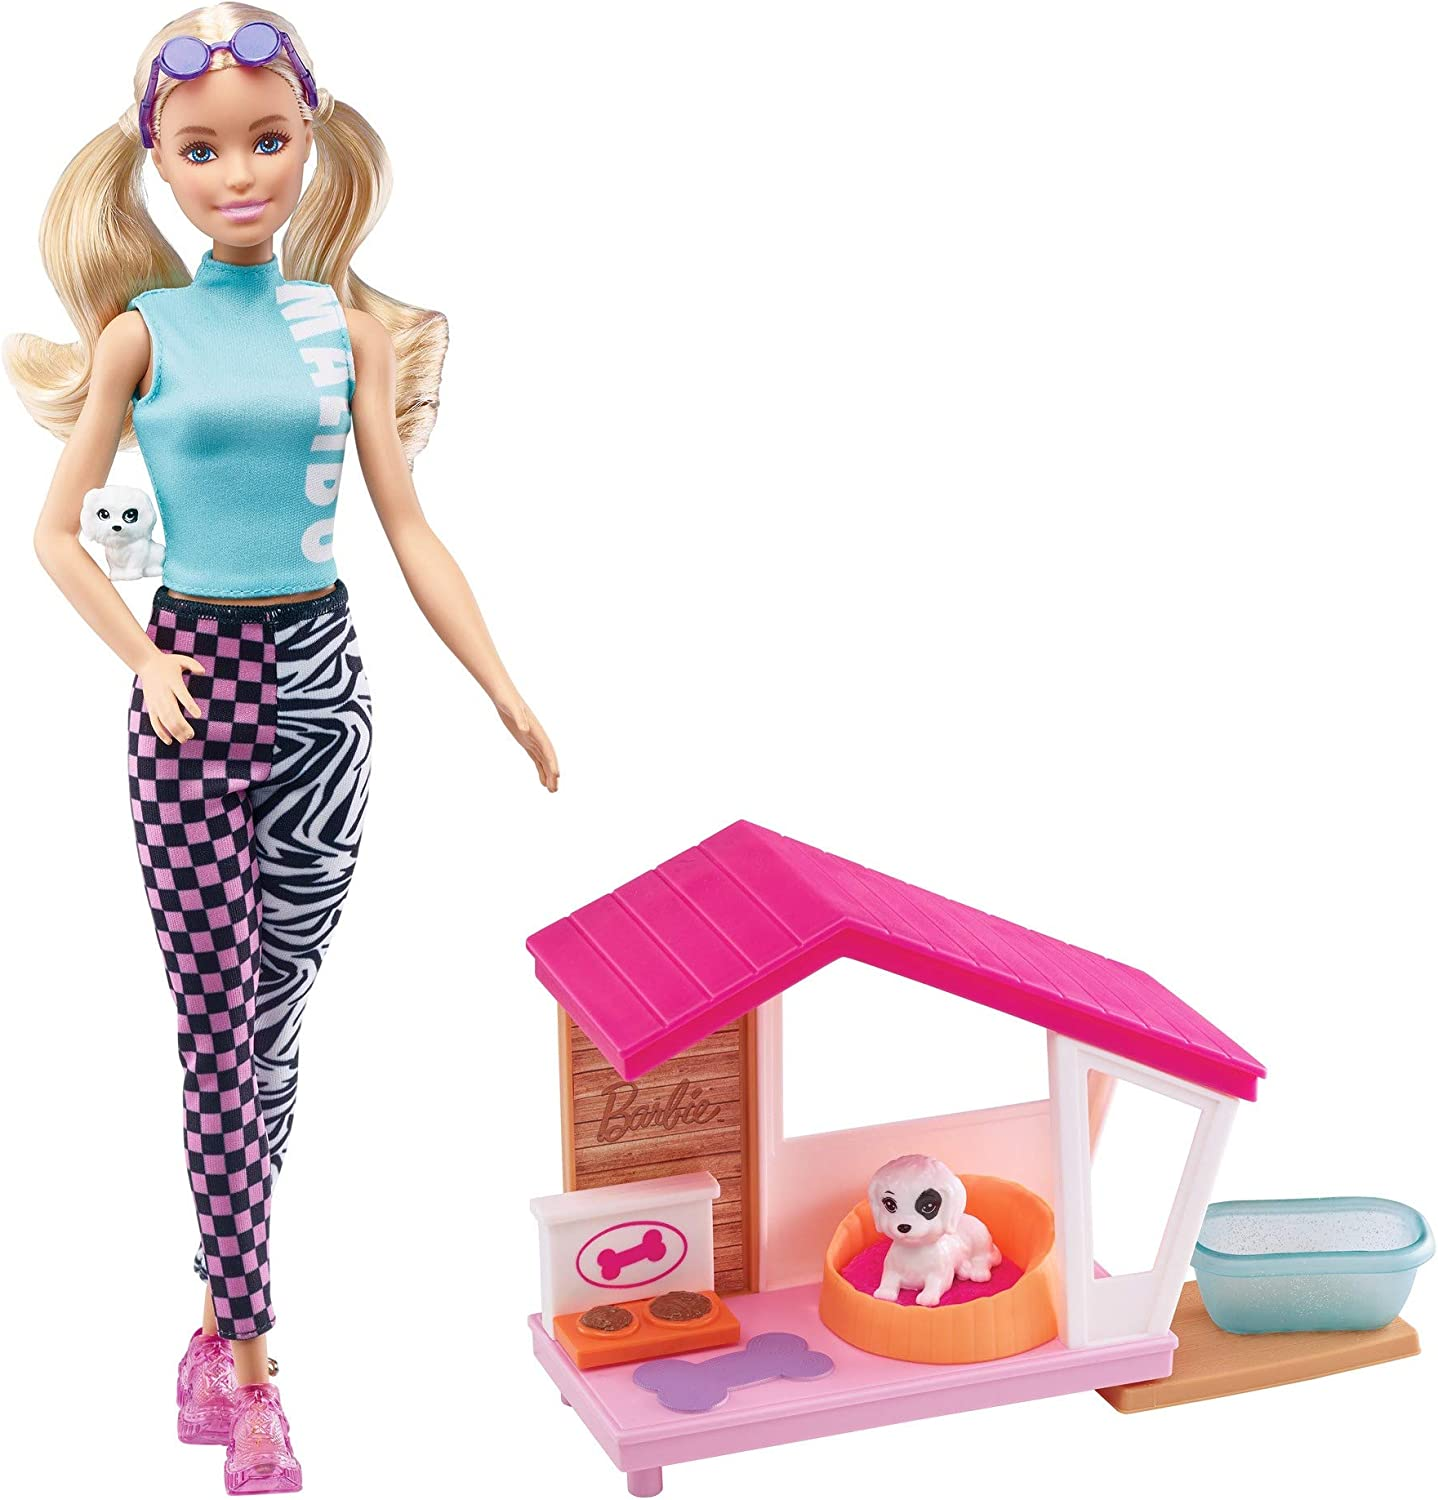 Barbie Mini Playset with 2 Pet Puppies, Doghouse and Pet Accessories, Gift for 3 to 7 Year Olds (GRG78)